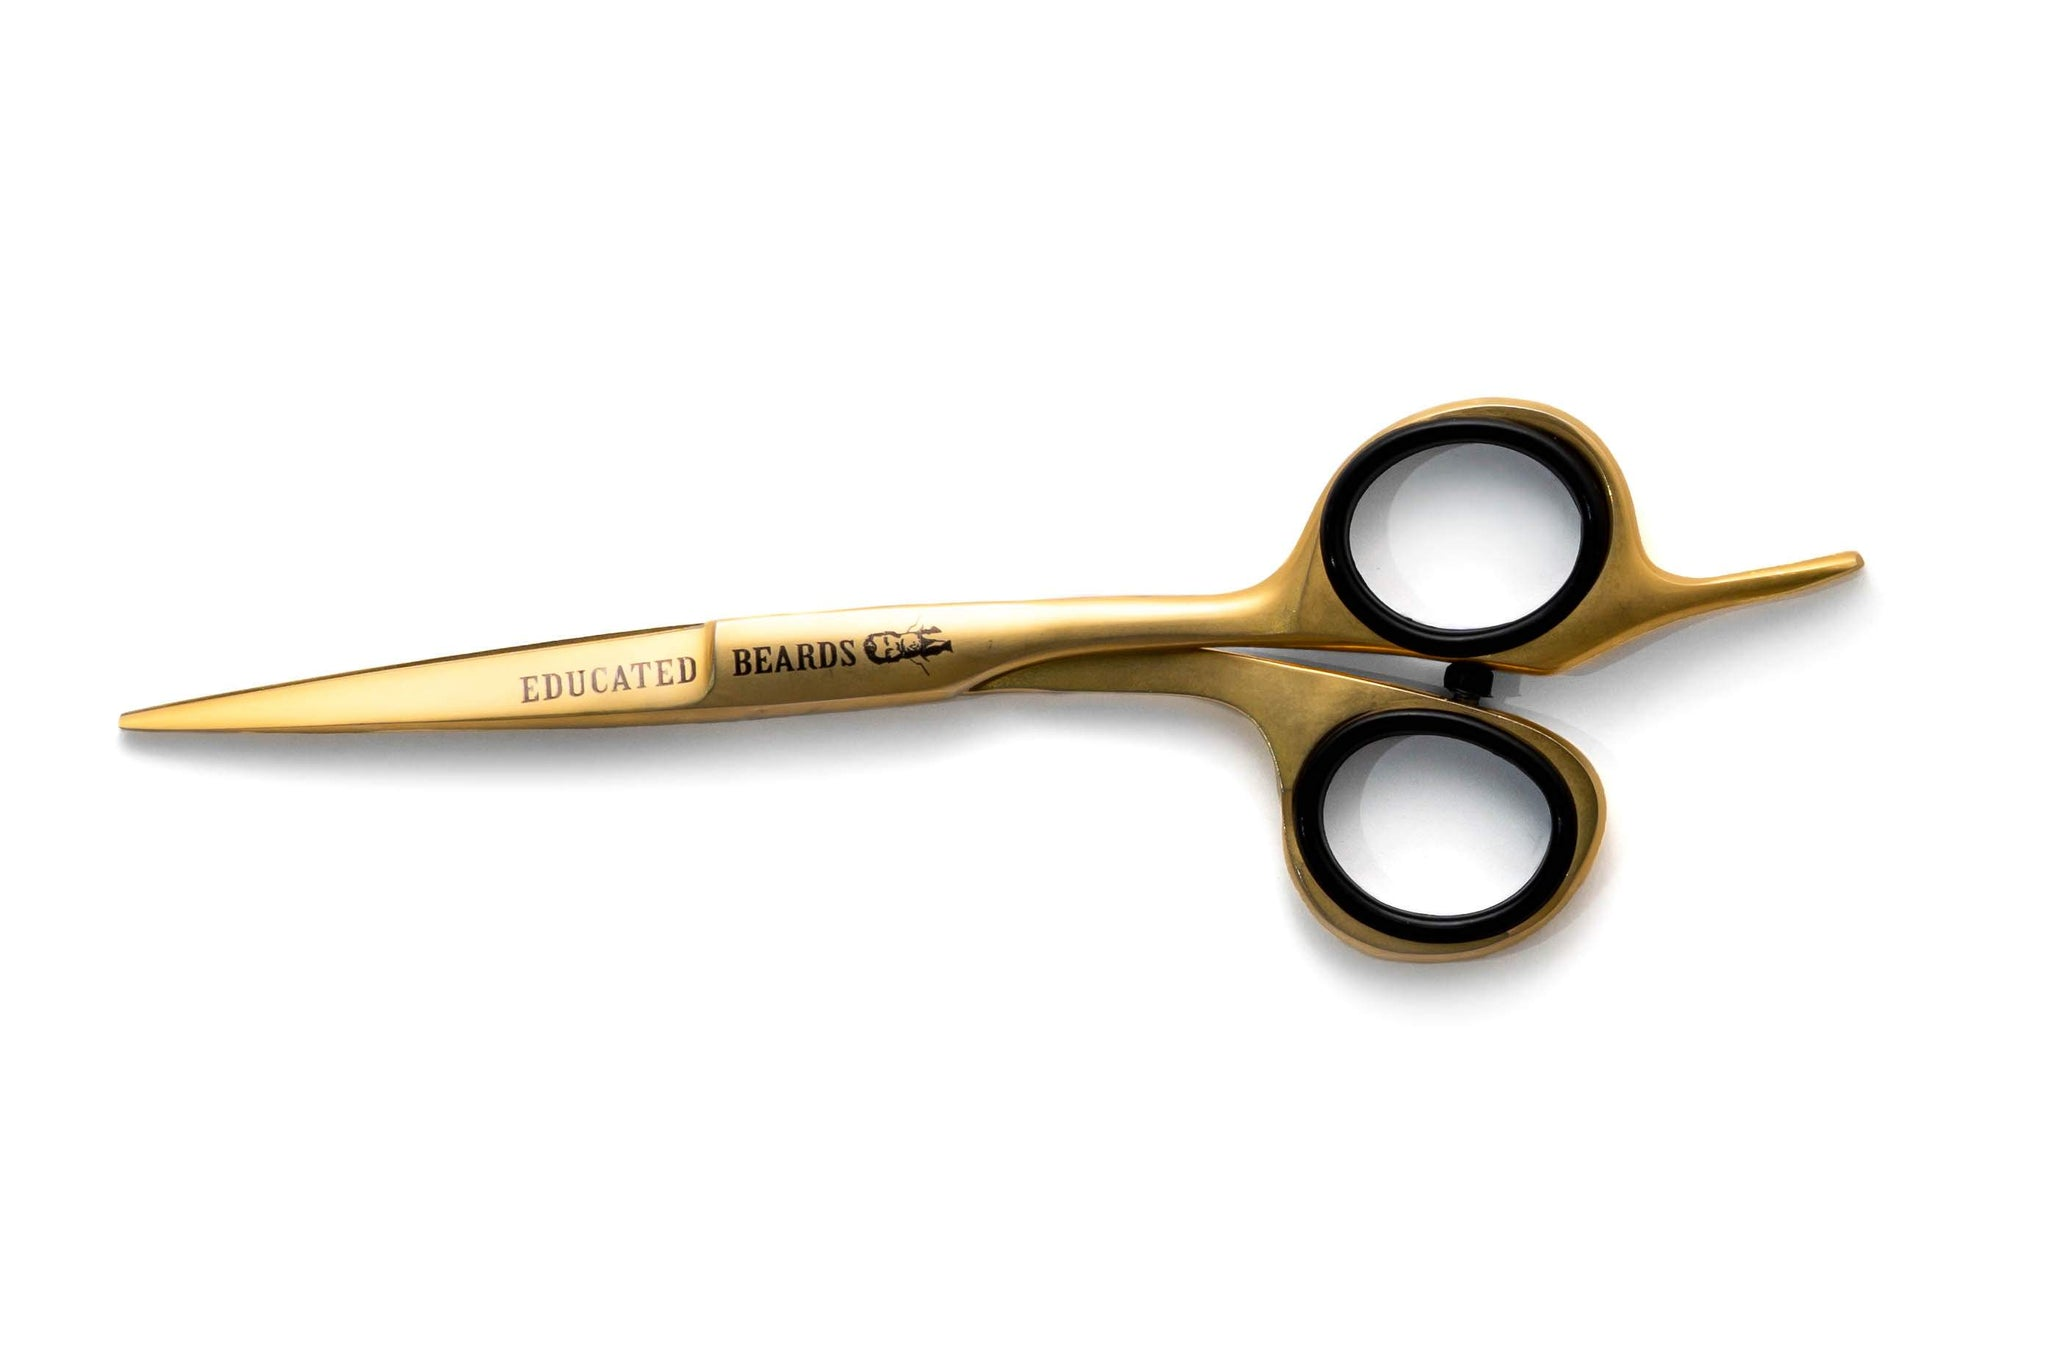 Premium Beard Thinning Shears